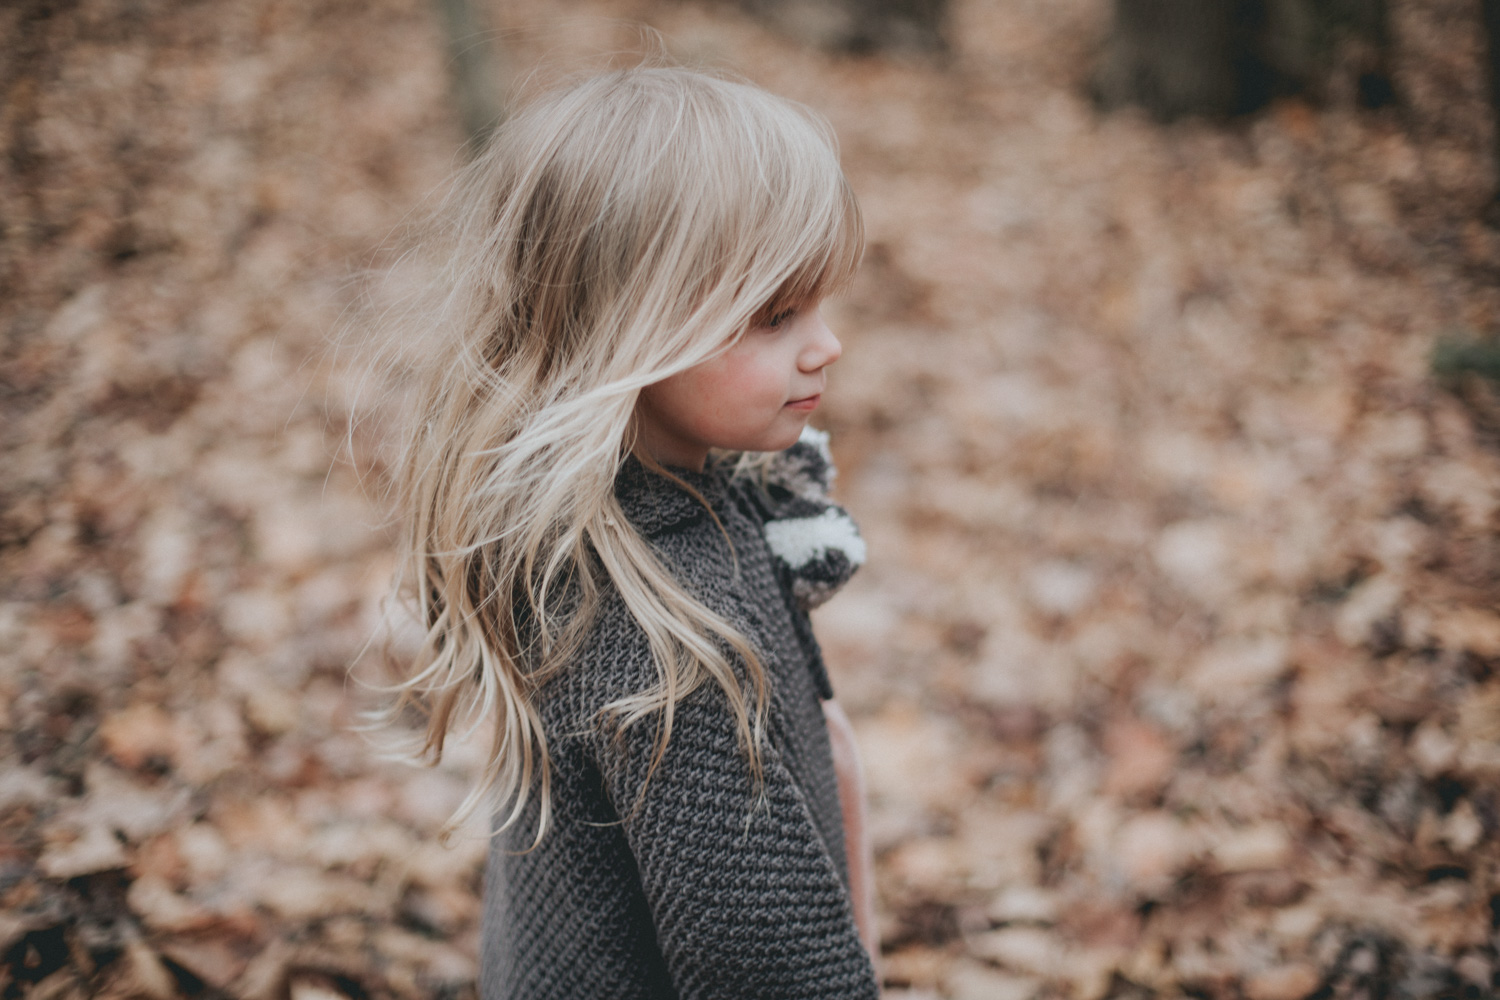 #vanberen #woolskool #knitwear #preciousmoments Van Beren eco friendly kids clothing